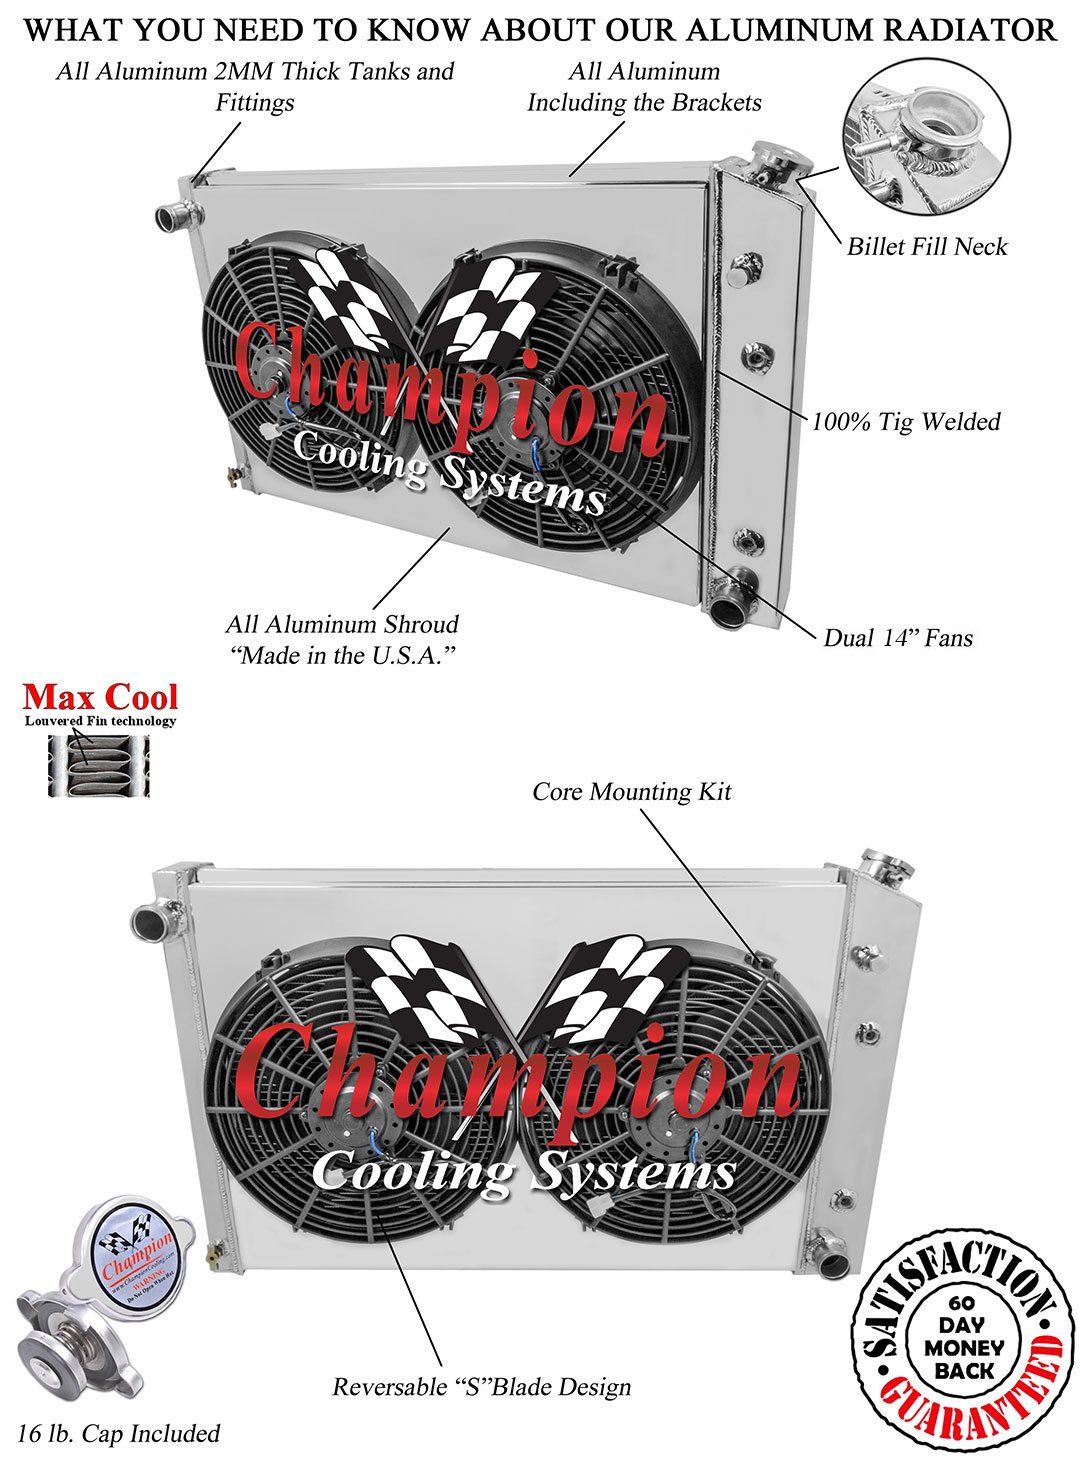 https://www.championcooling.com/photos/Photos%20White/With%20Fans/W-Shroud/716/716_Combo002.jpg